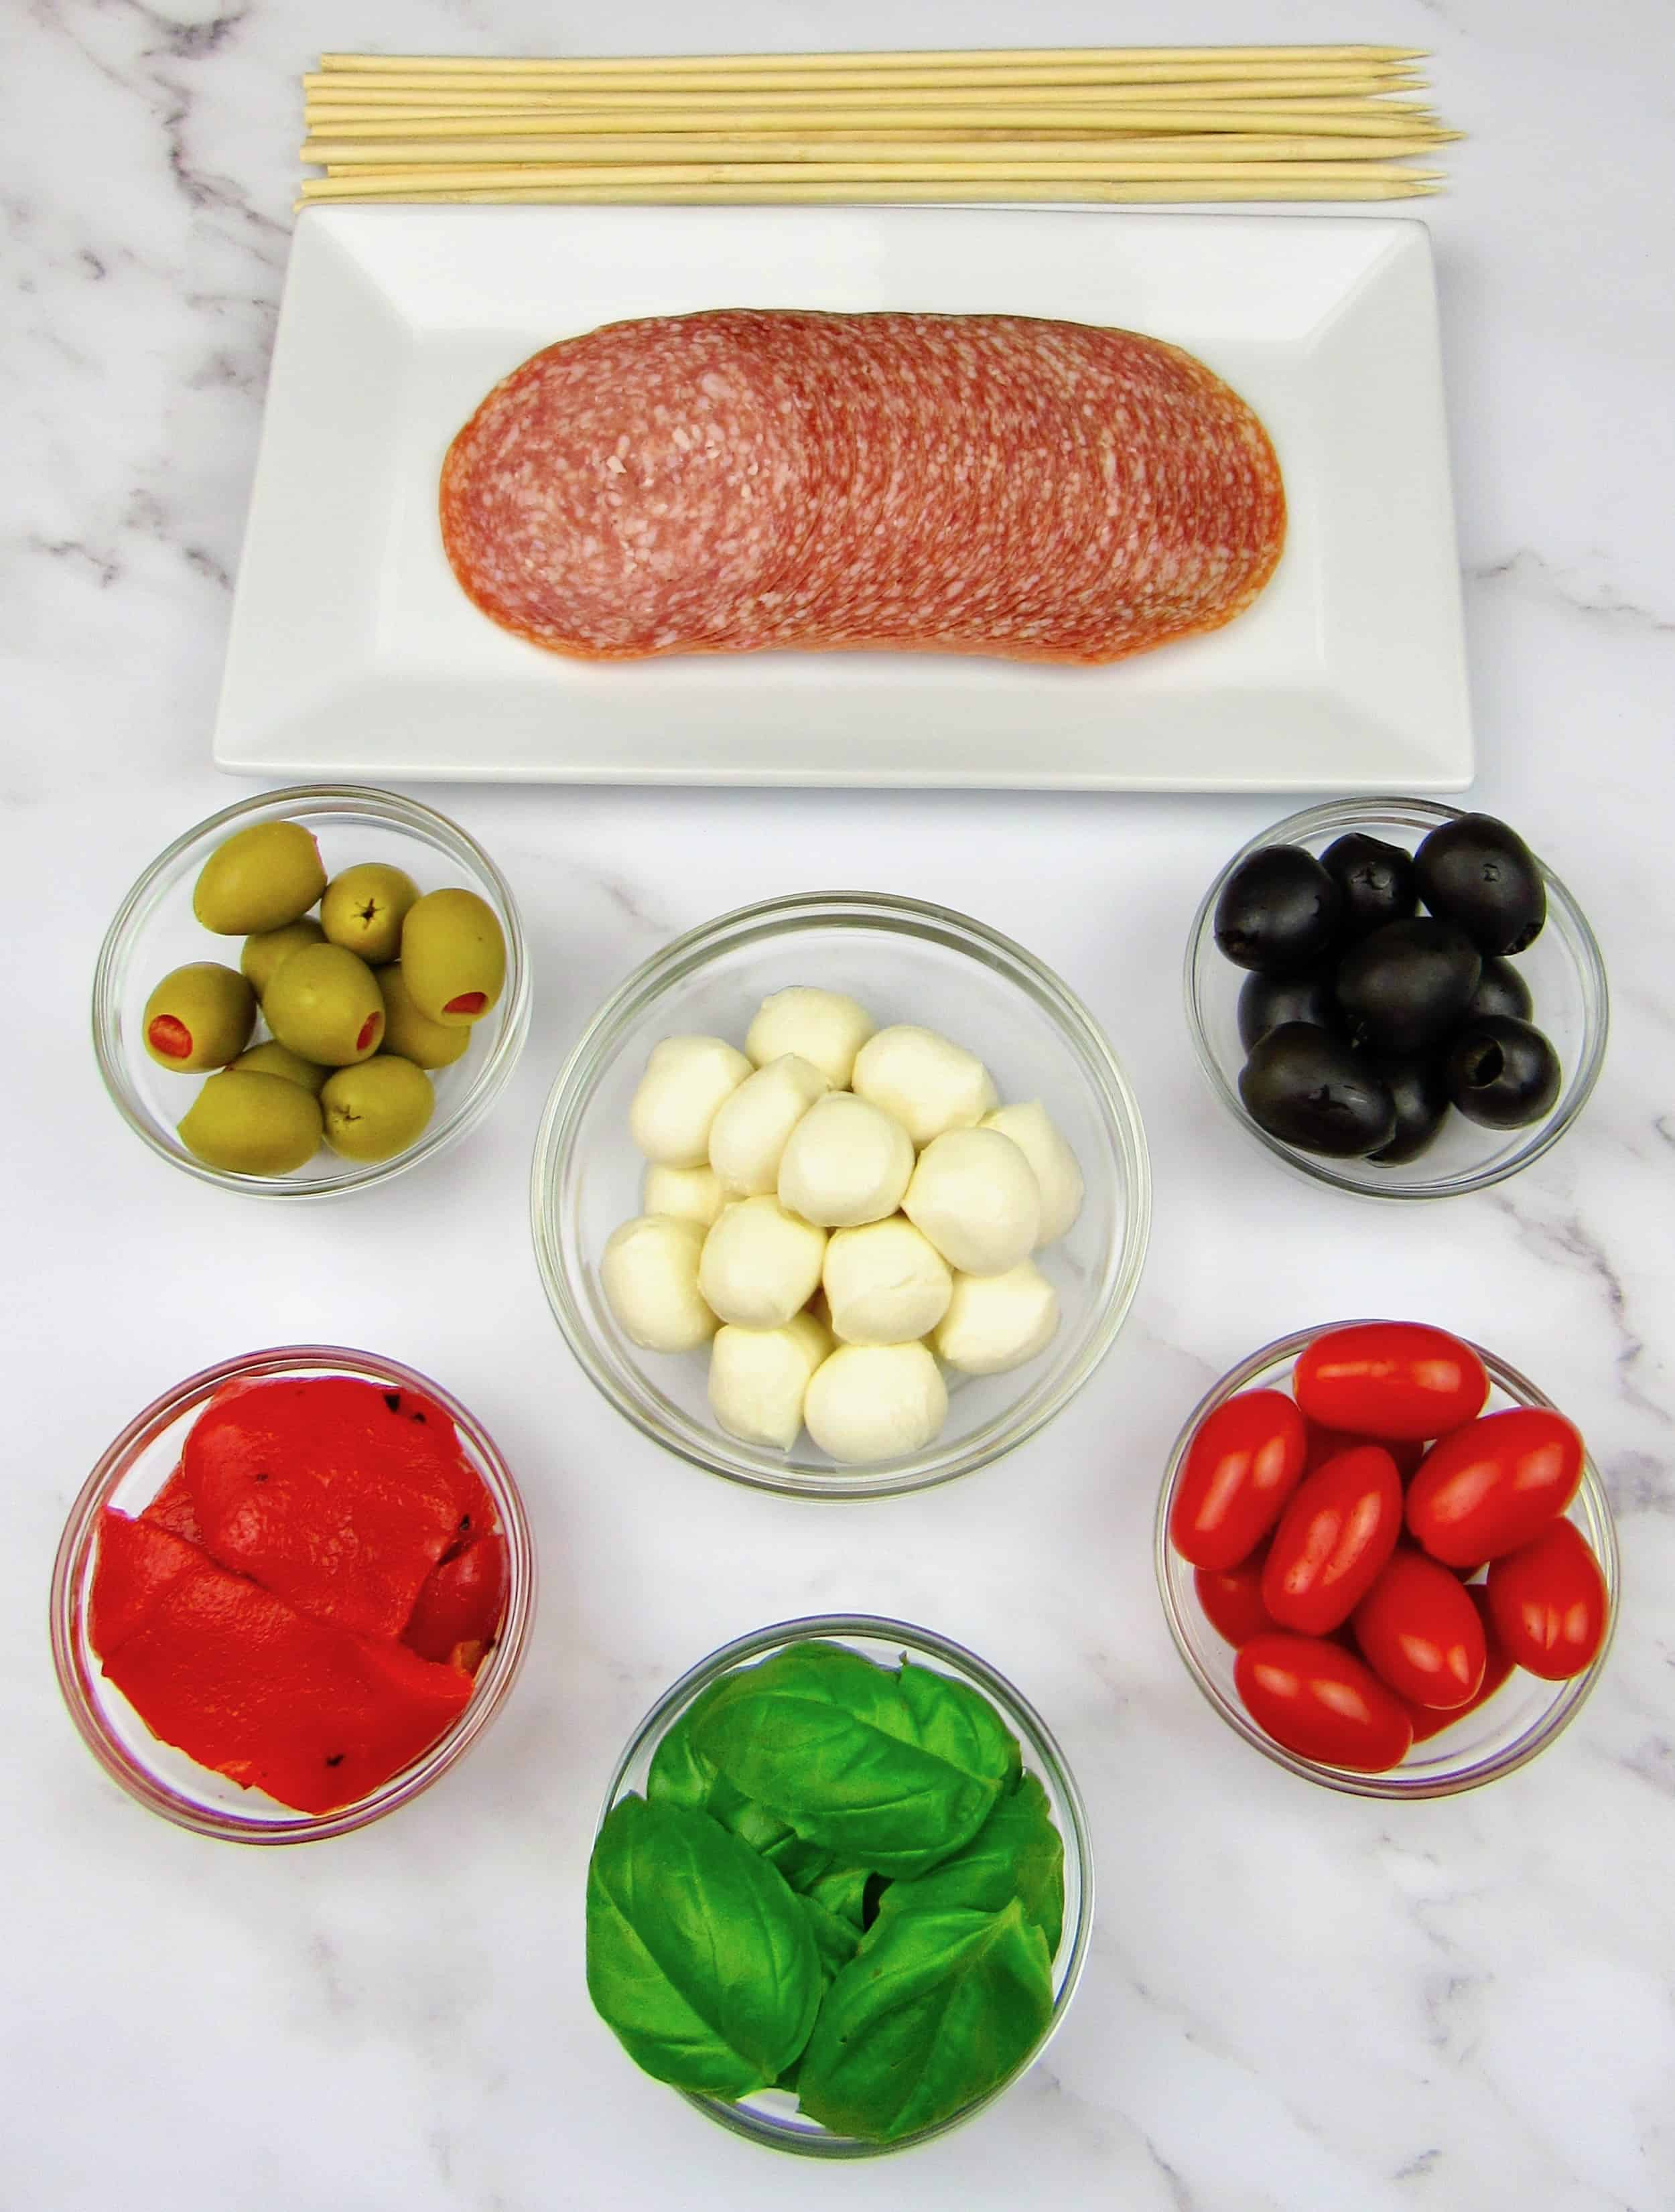 ingredients for antipasti skewers in little glass bowls